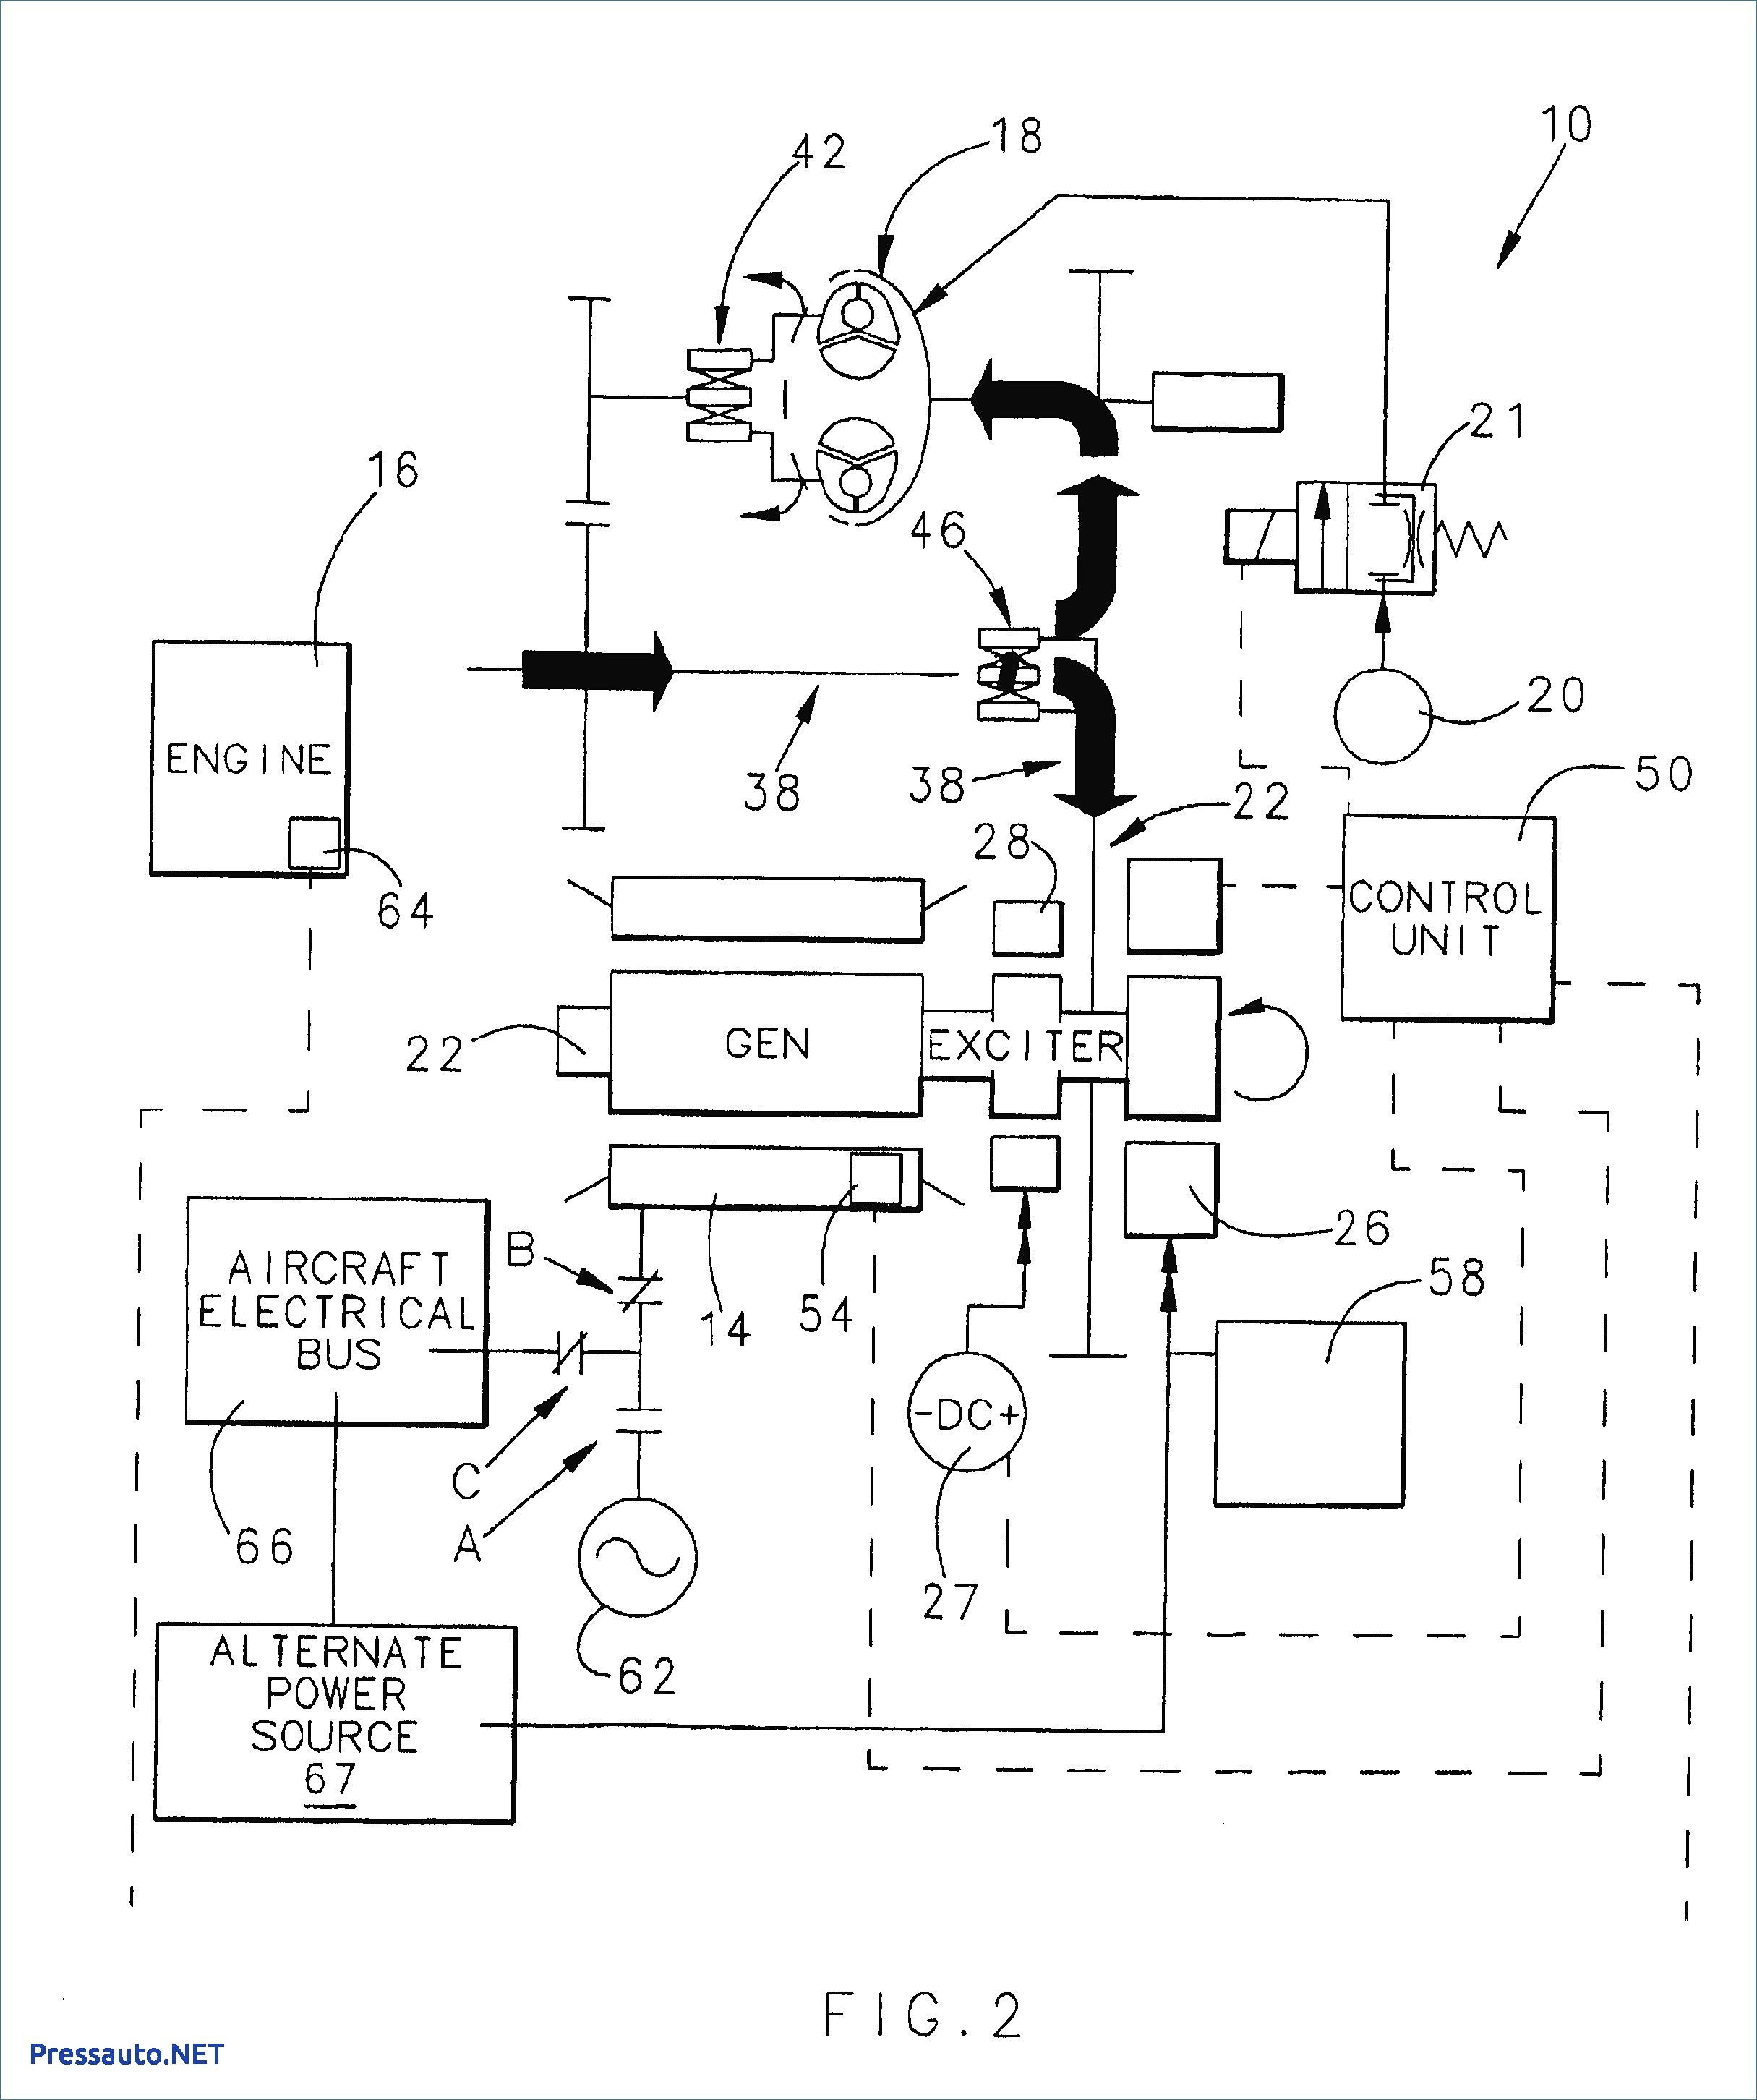 diagram john deere alternator wiring diagram